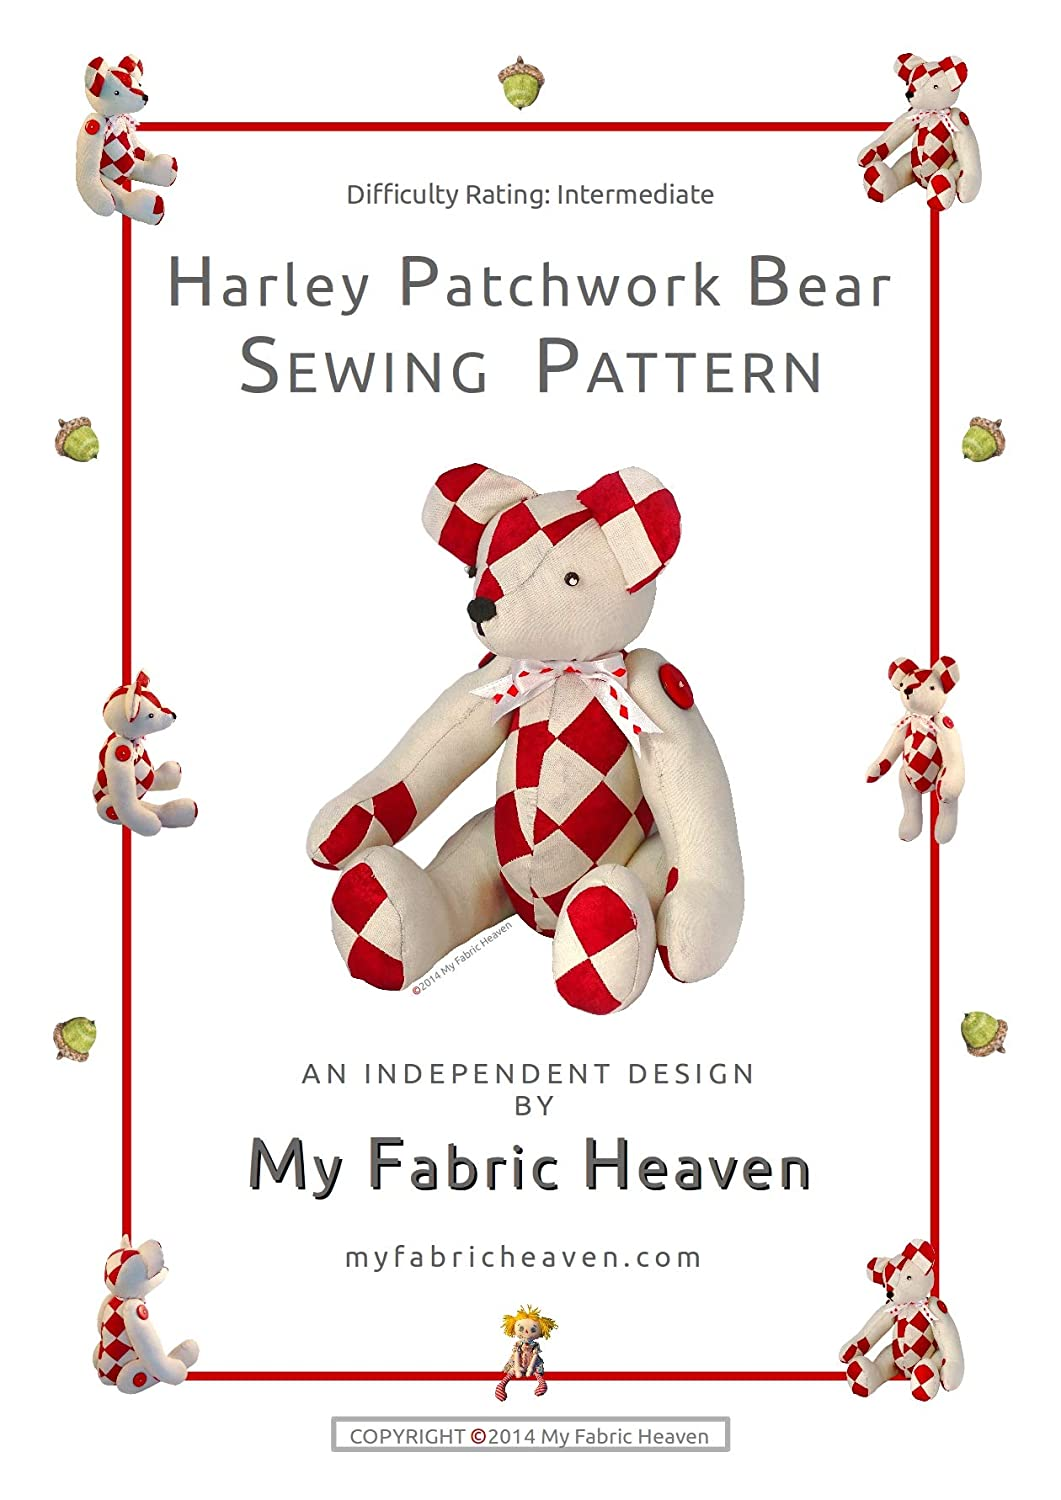 2 X Fabric Sewing PATTERNS Independent Design. 10 Inch Denim Elephant & 14 Inch Patchwork Teddy Memory Bear with Easy Tutorial Style Instructions. Ella Elephant & Harley Teddy Bear FREE POST My Fabric Heaven